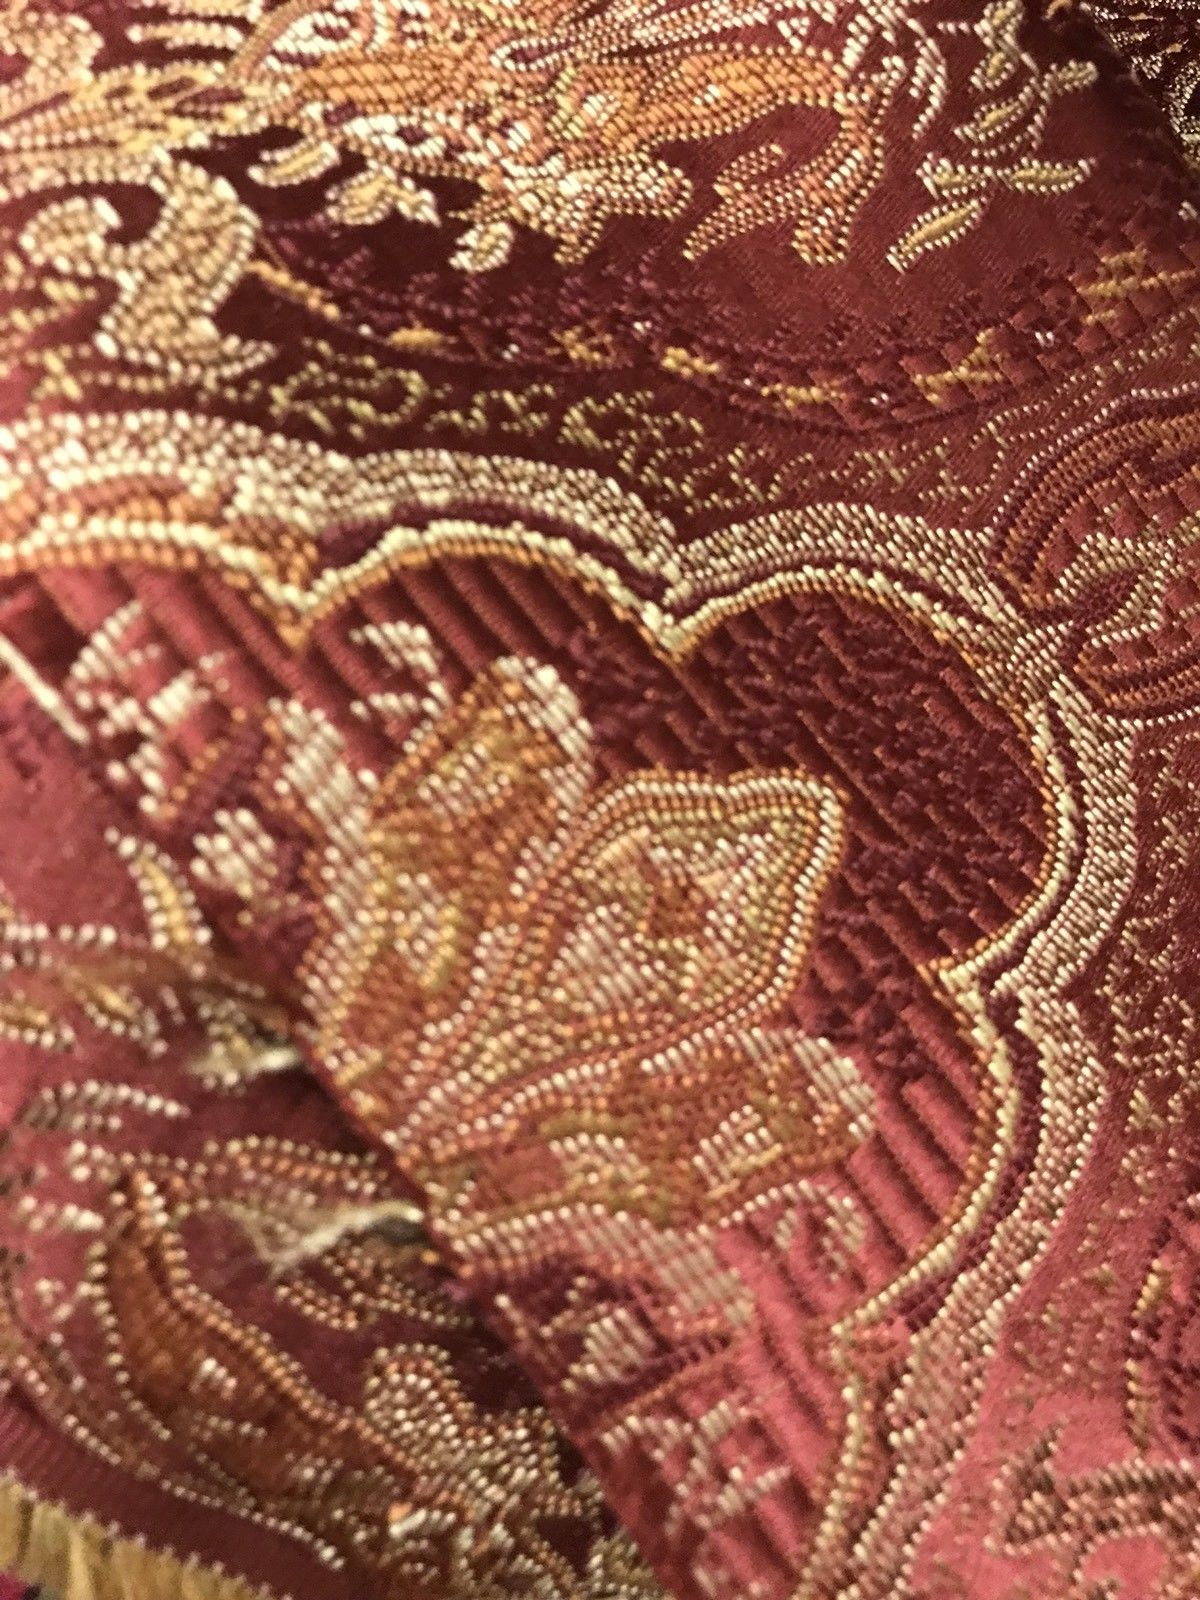 SWATCH Designer Brocade Bohemian Upholstery Fabric - Wine Red - Fancy Styles Fabric Boutique